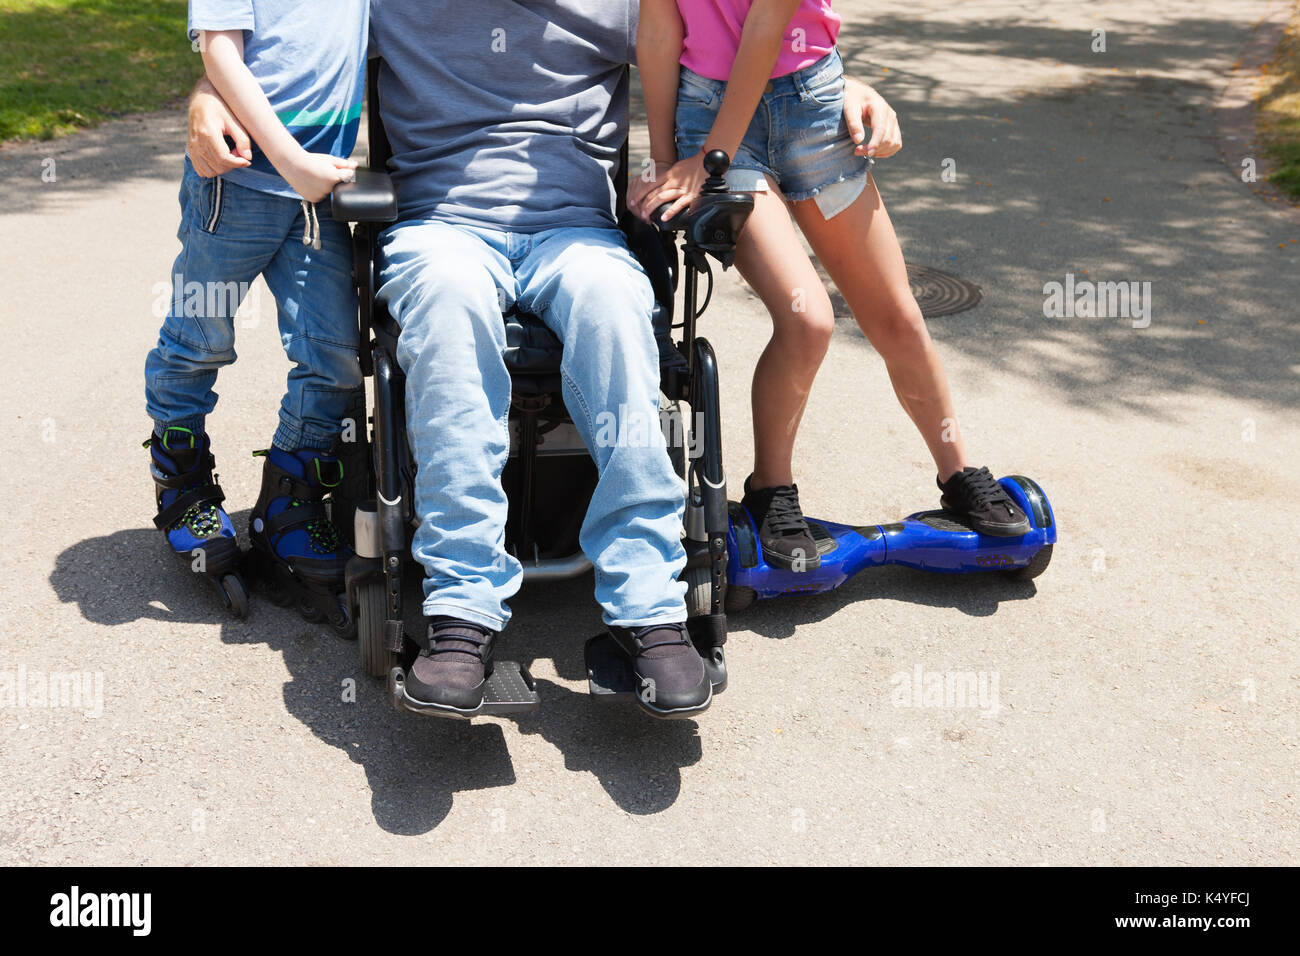 Disabled father on the wheelchair playing with children. - Stock Image